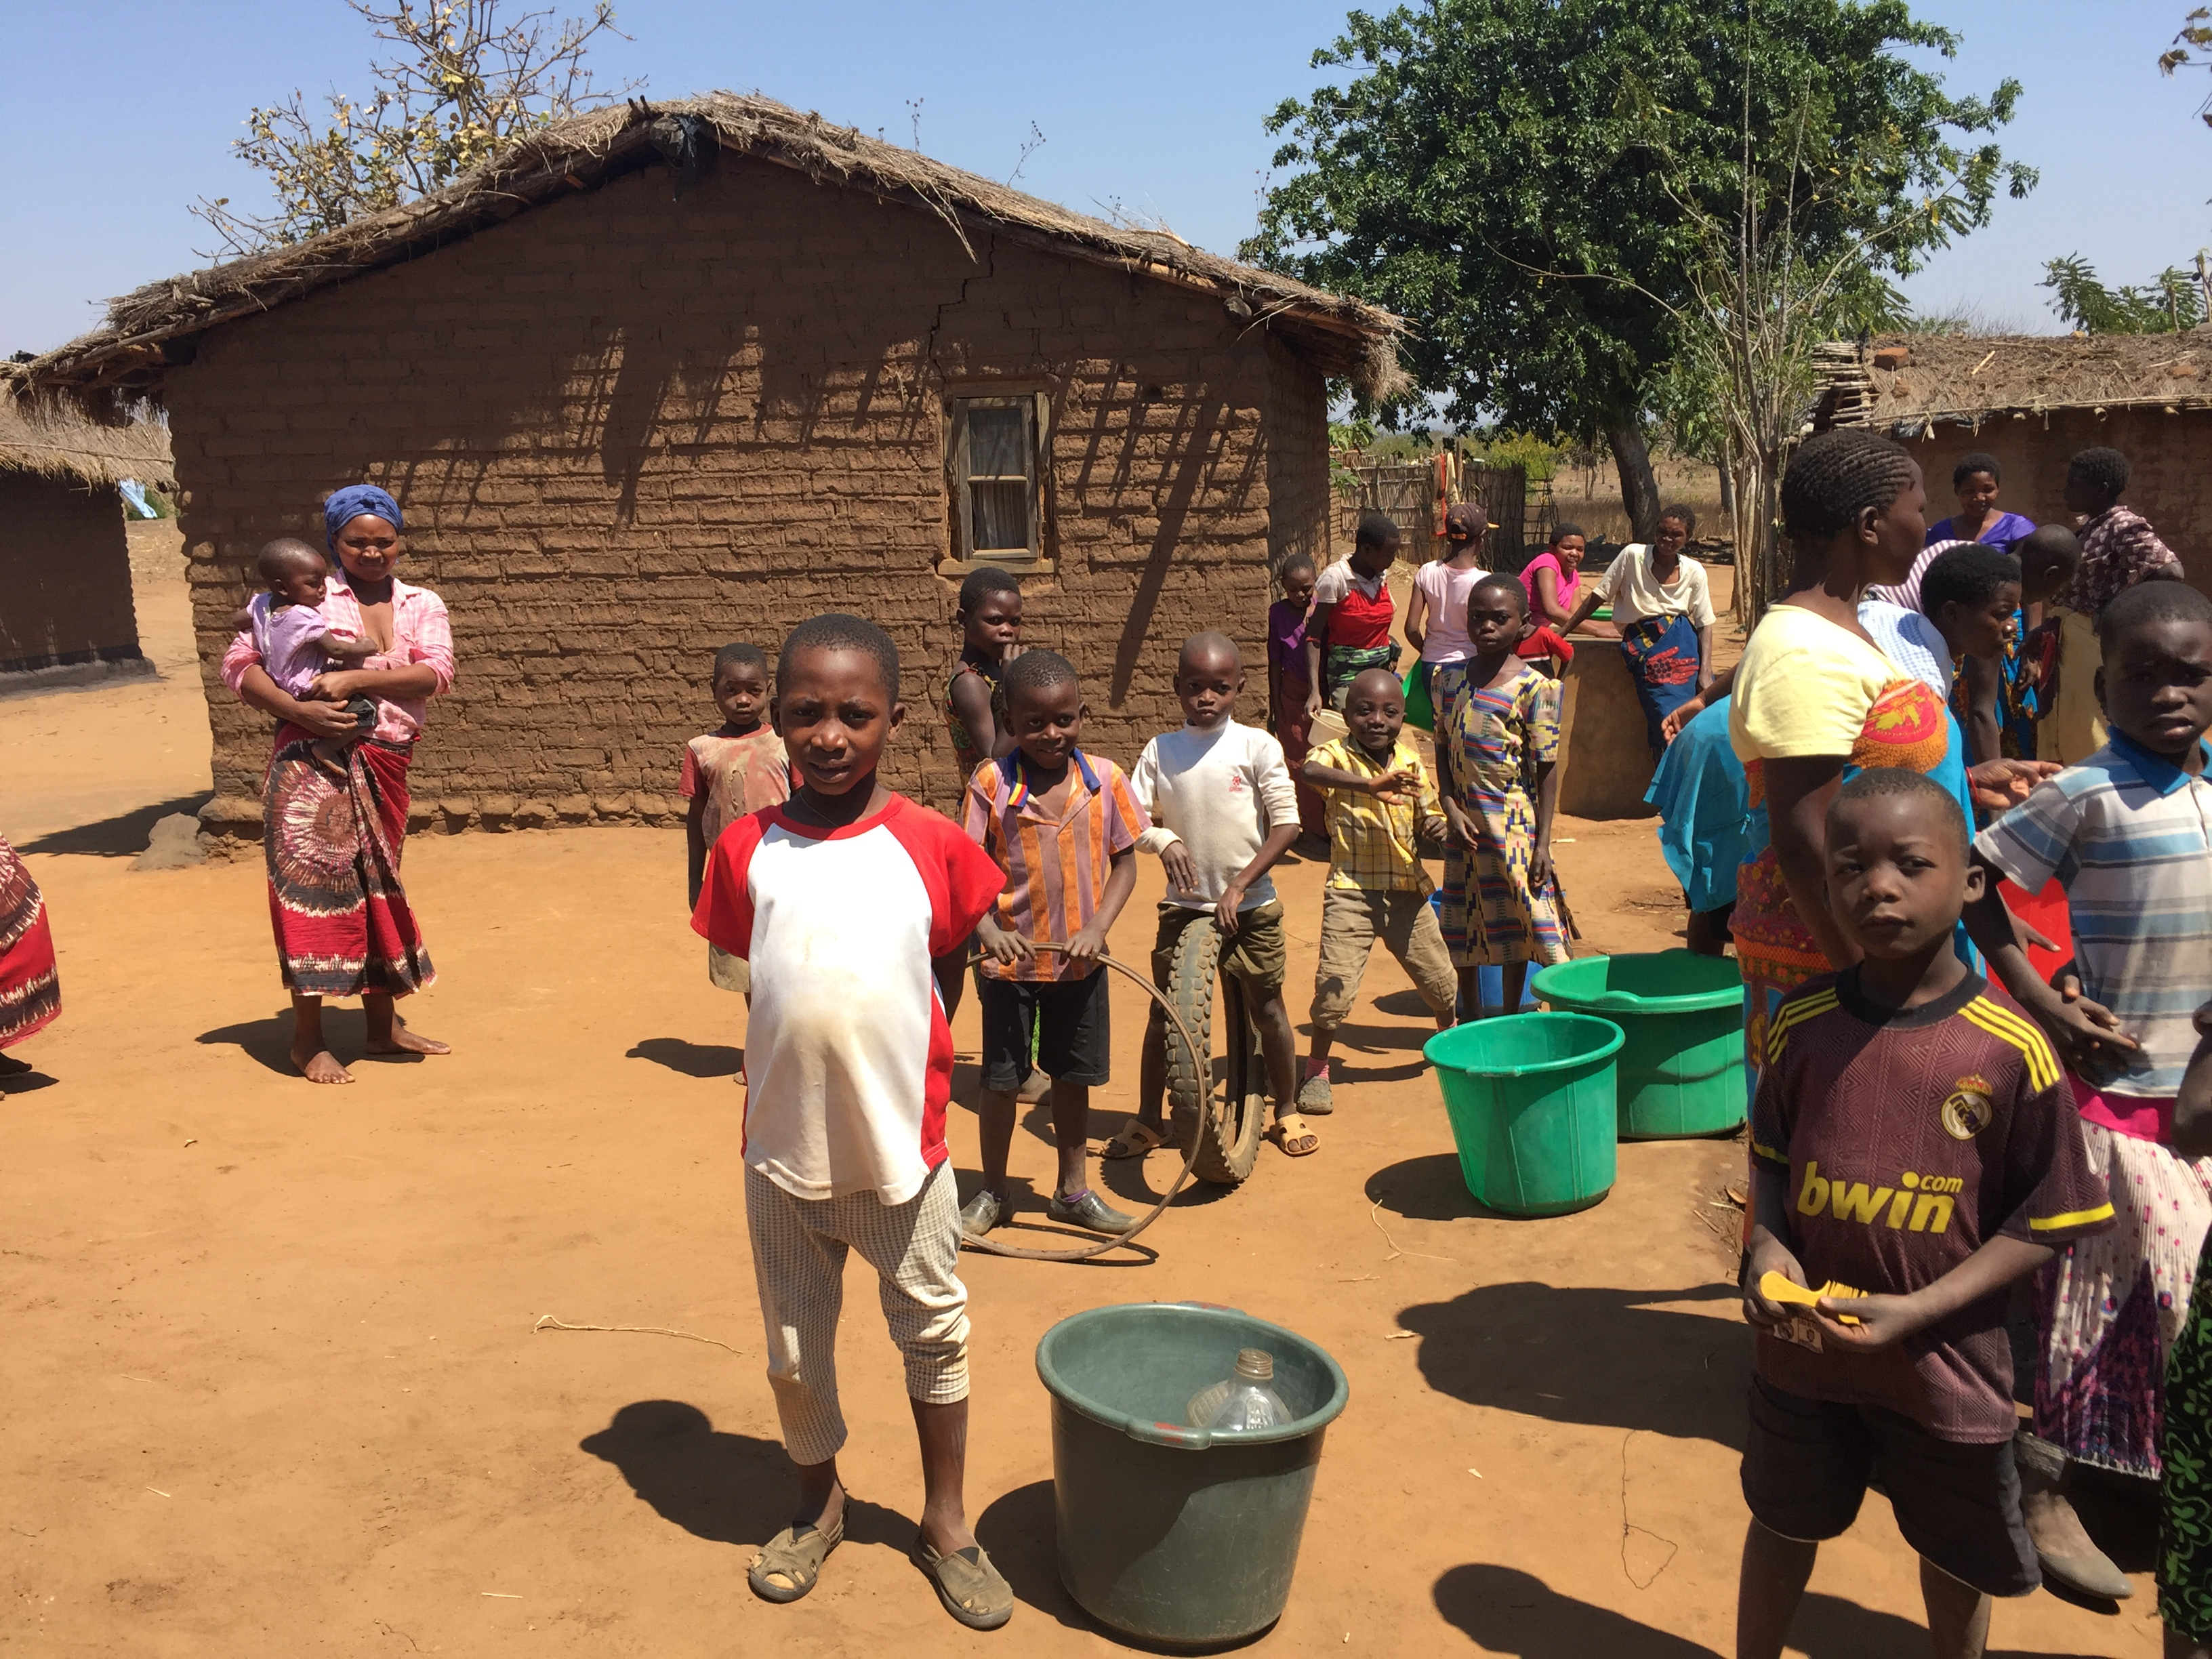 Africa Boy Water Bucket